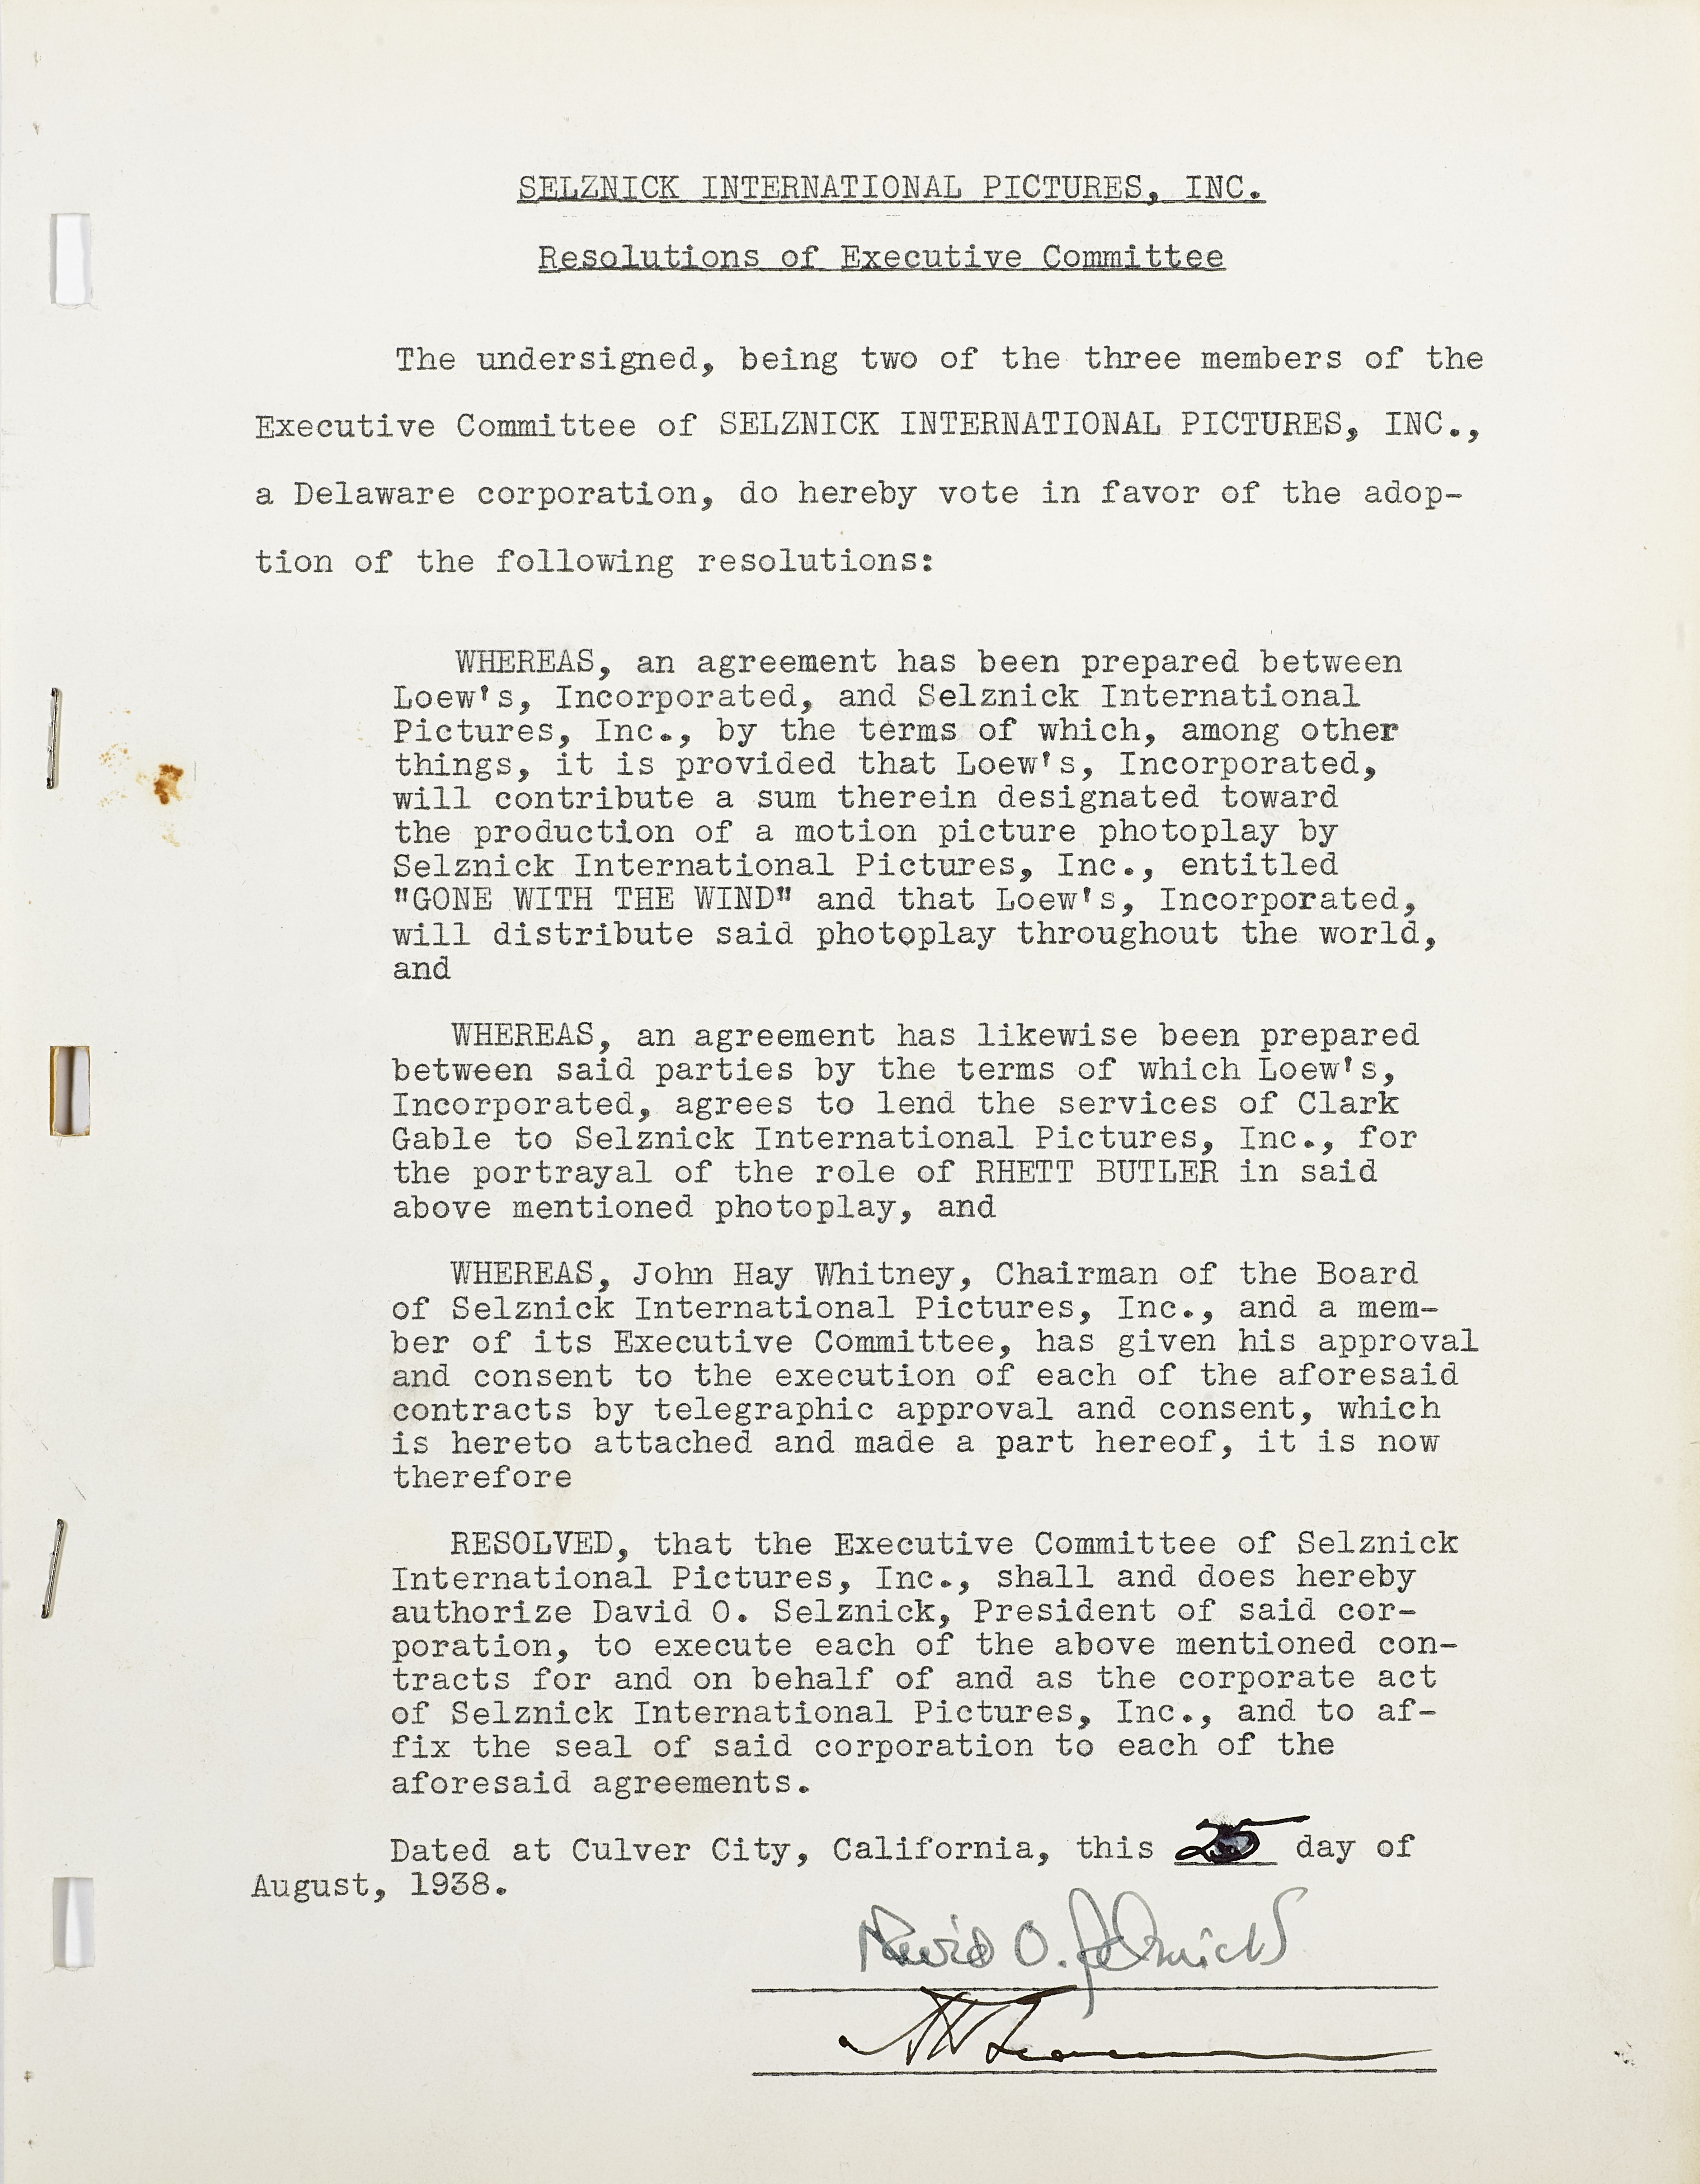 A David O. Selznick signed resolution to produce Gone With the Wind